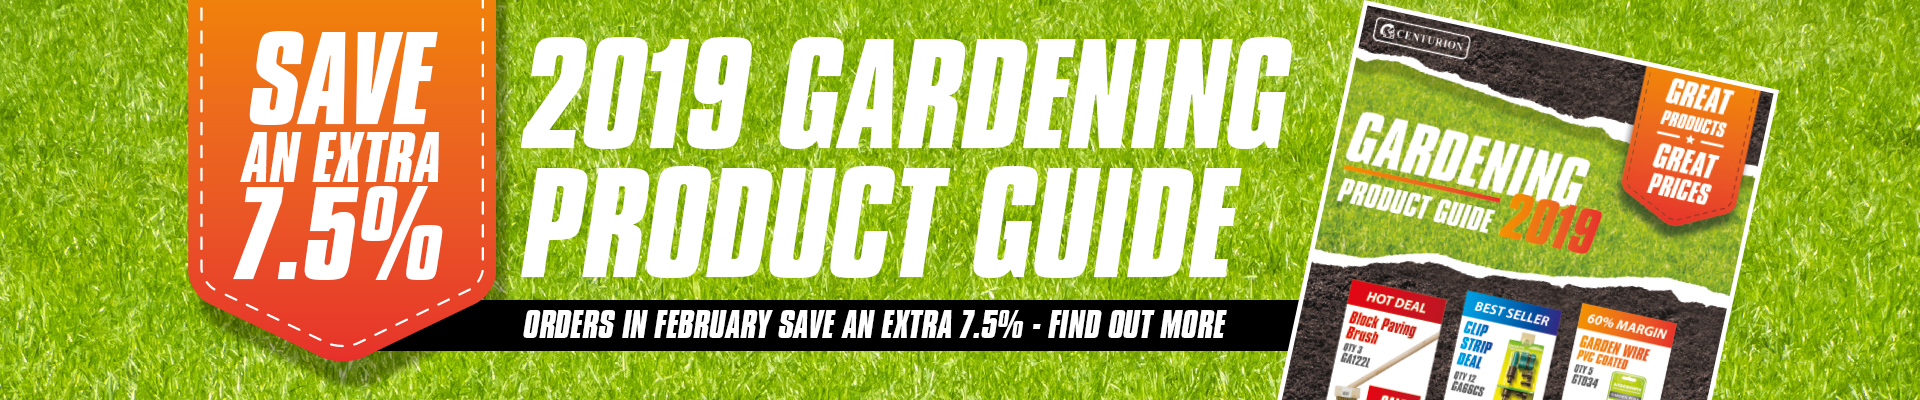 wholesale gardening products supplier uk special offers